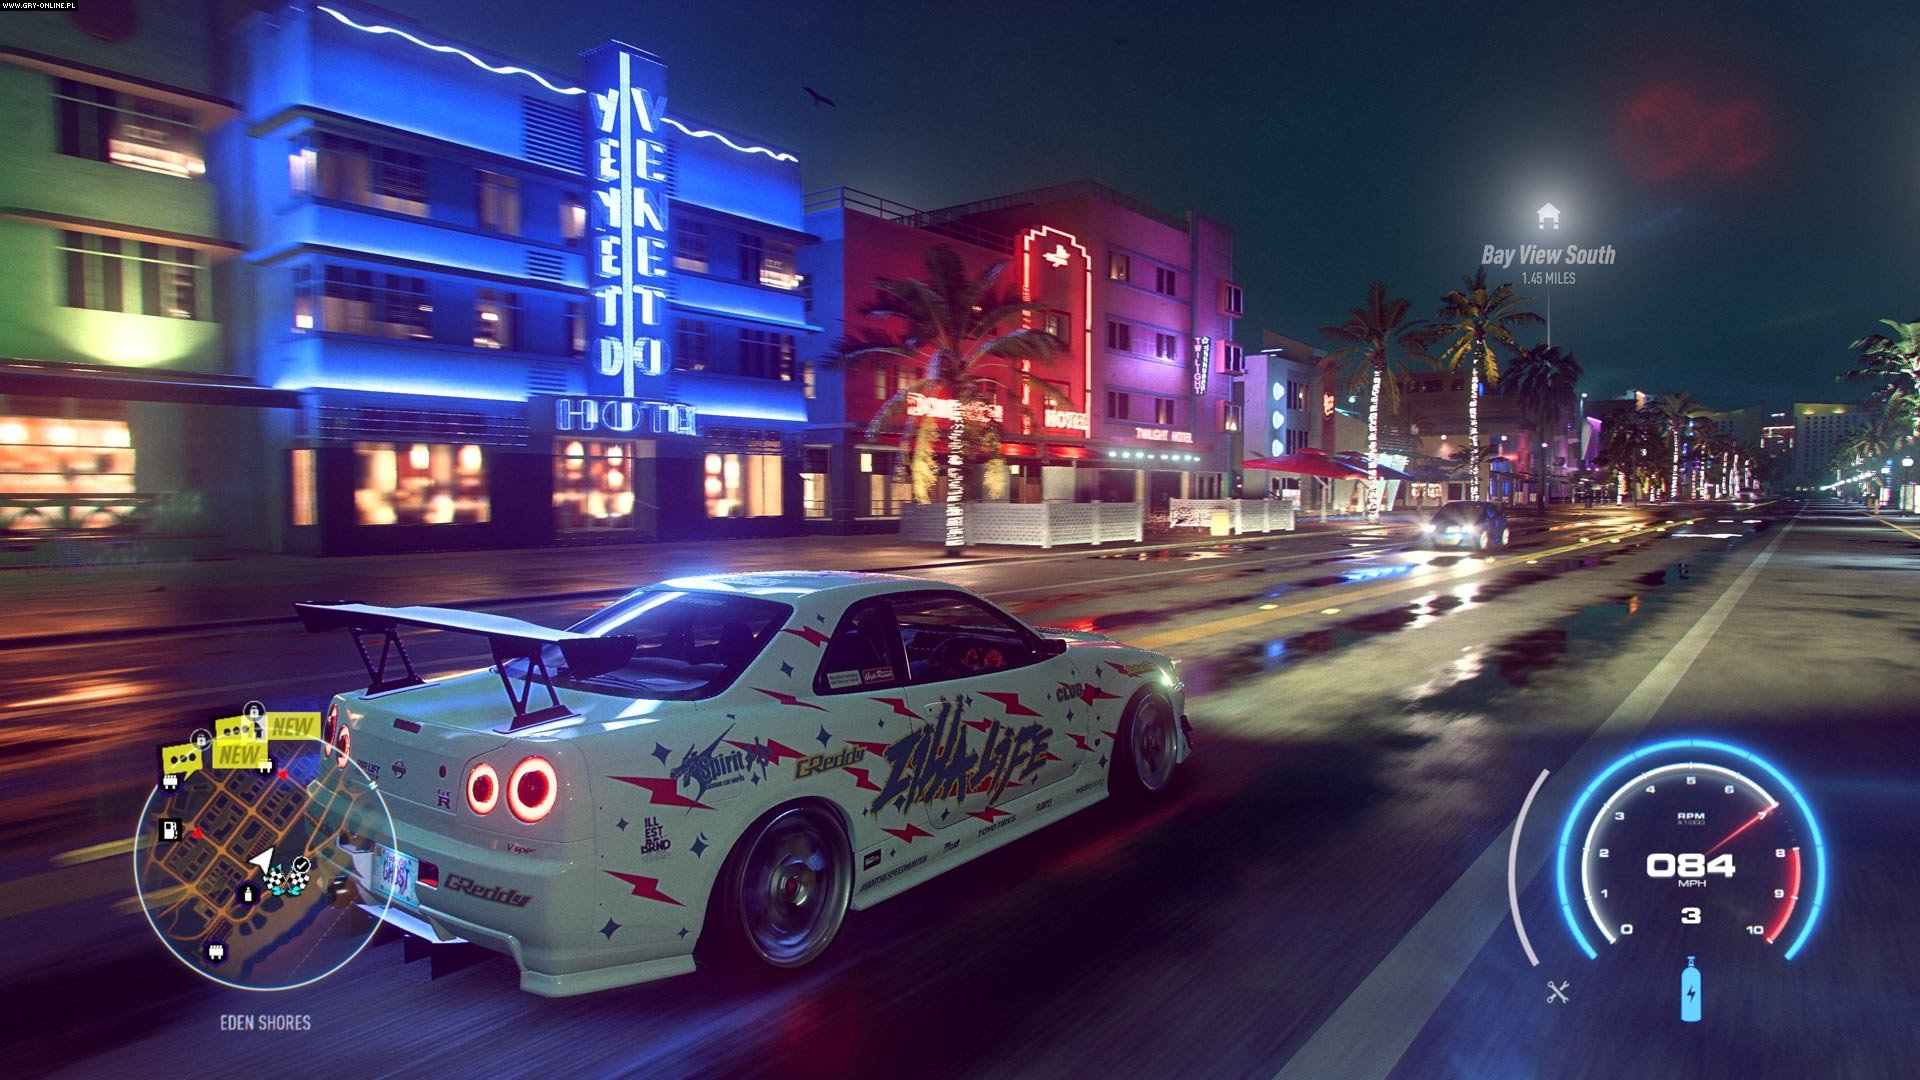 Need for Speed: Heat PC, PS4, XONE Gry Screen 22/28, Ghost Games, Electronic Arts Inc.